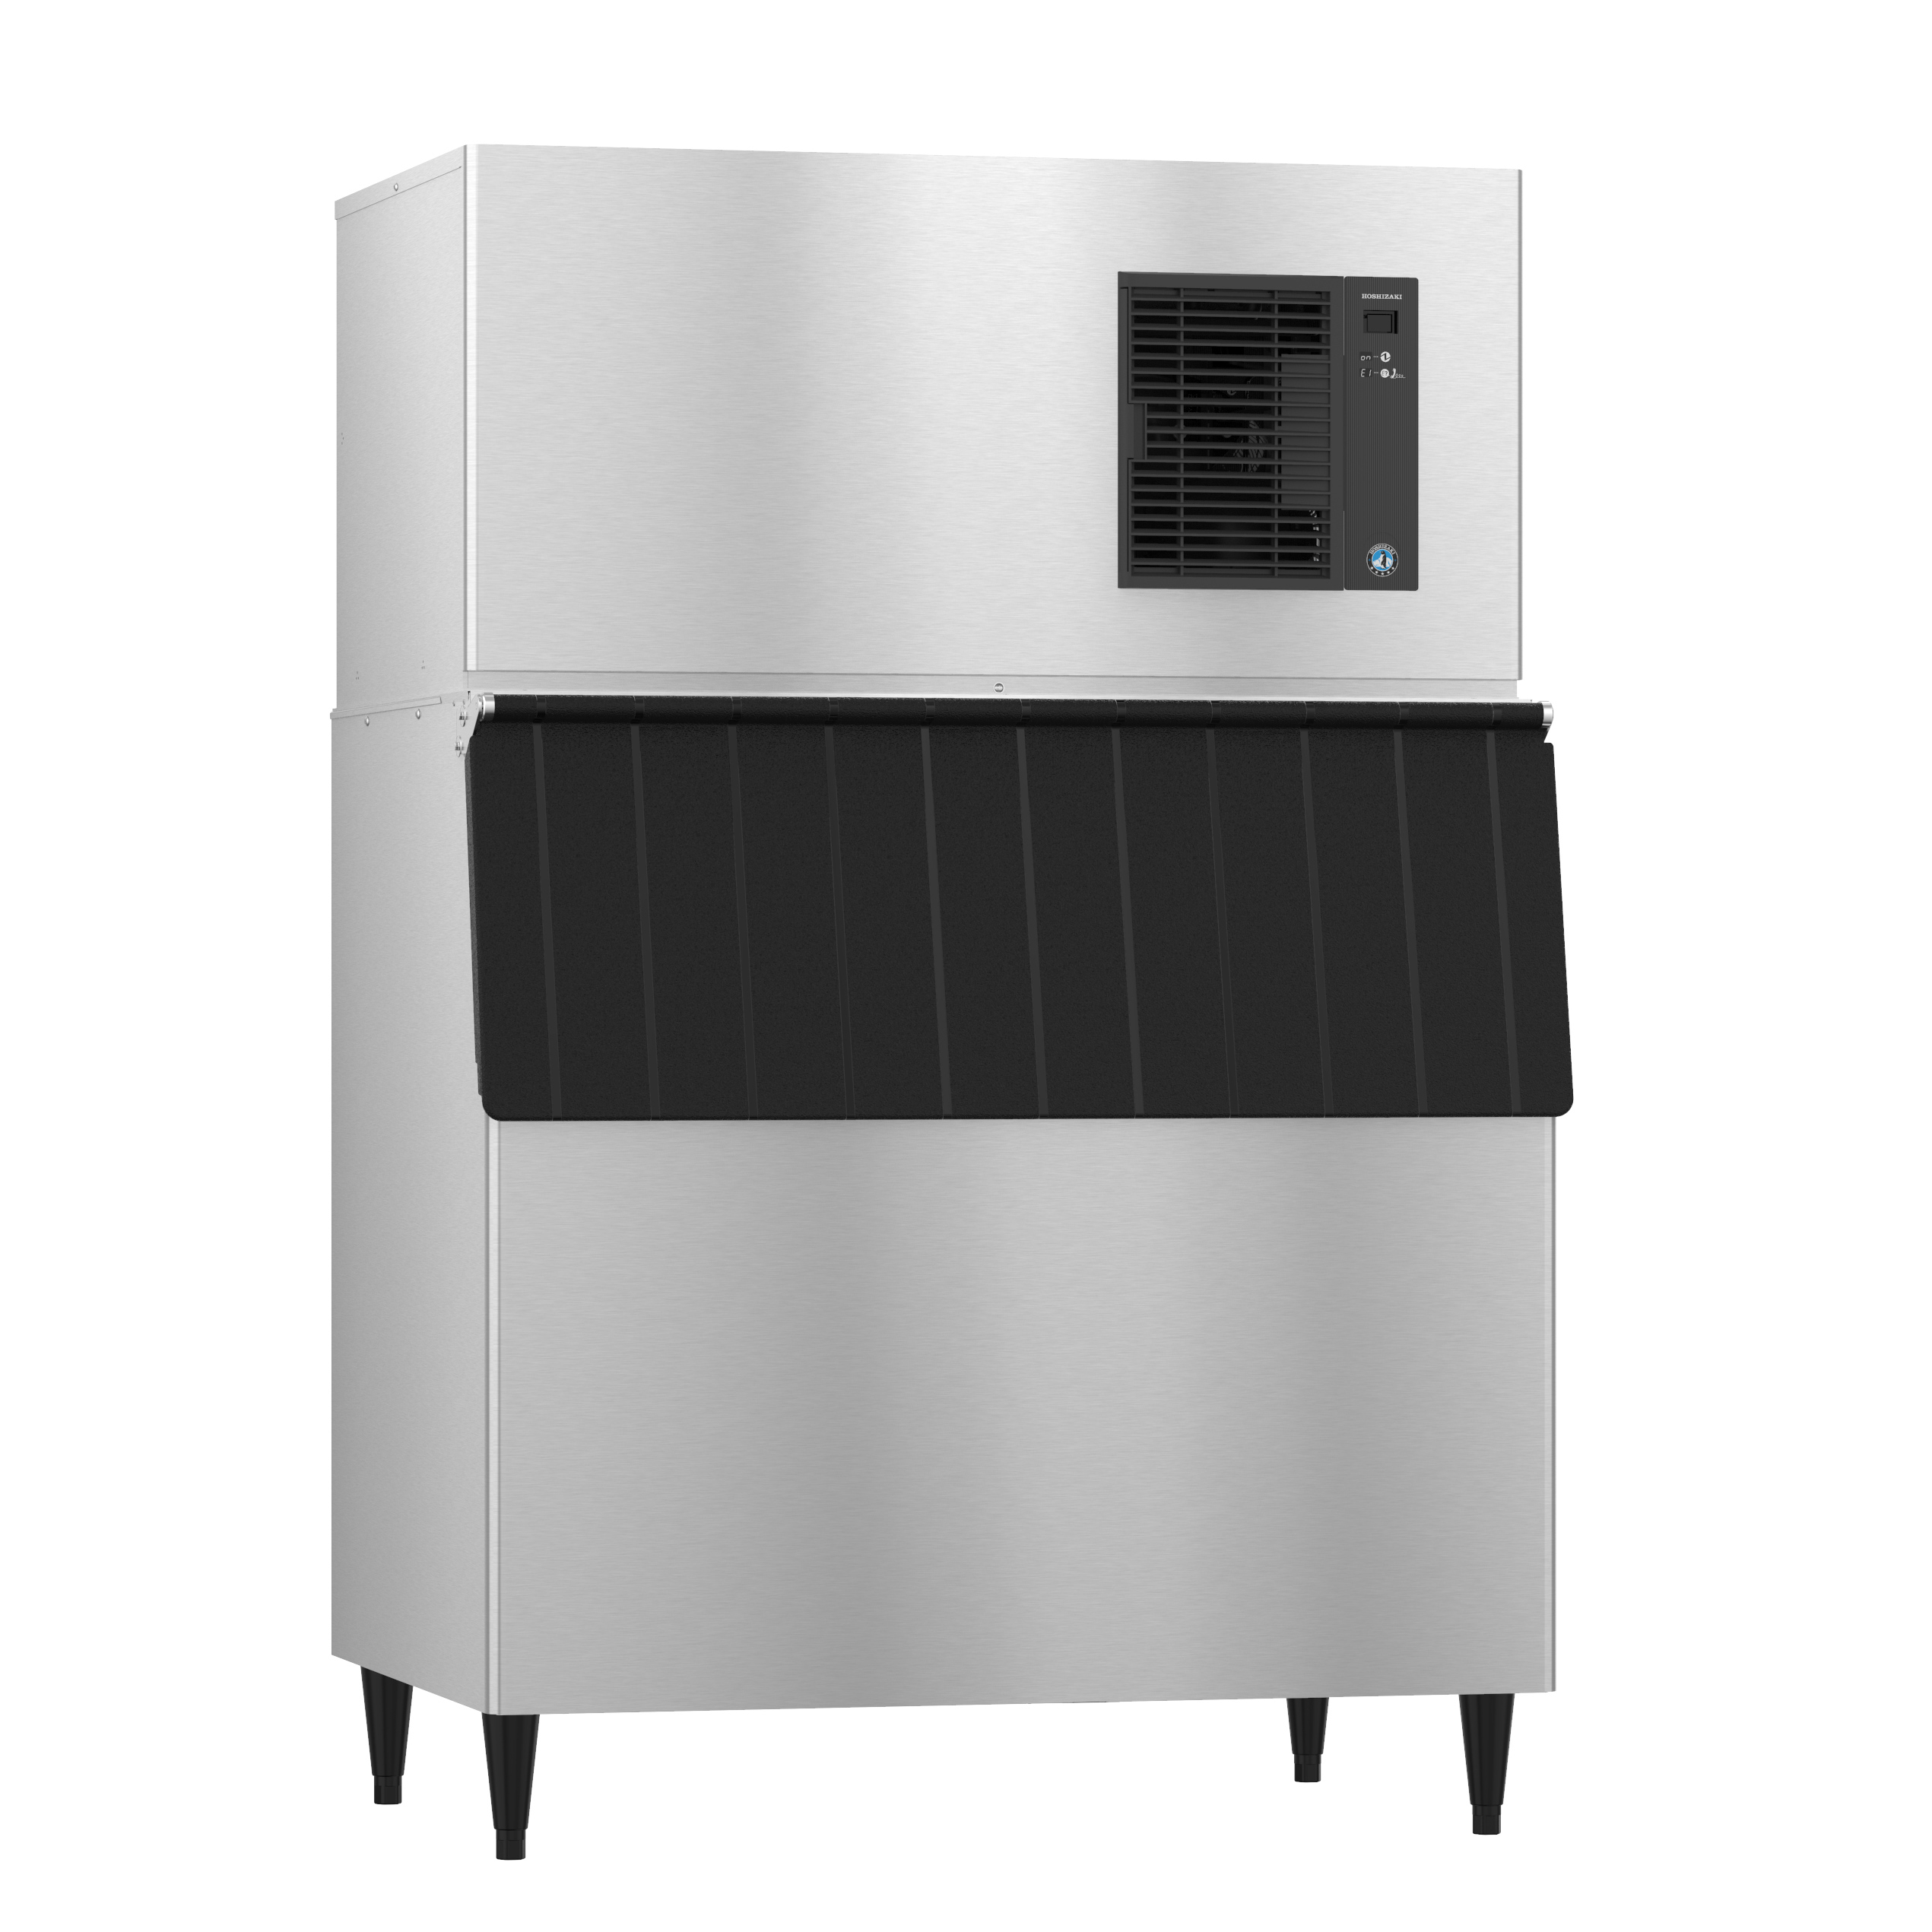 Hoshizaki IM-500SAB ice cubers, ice storage & ice dispensers